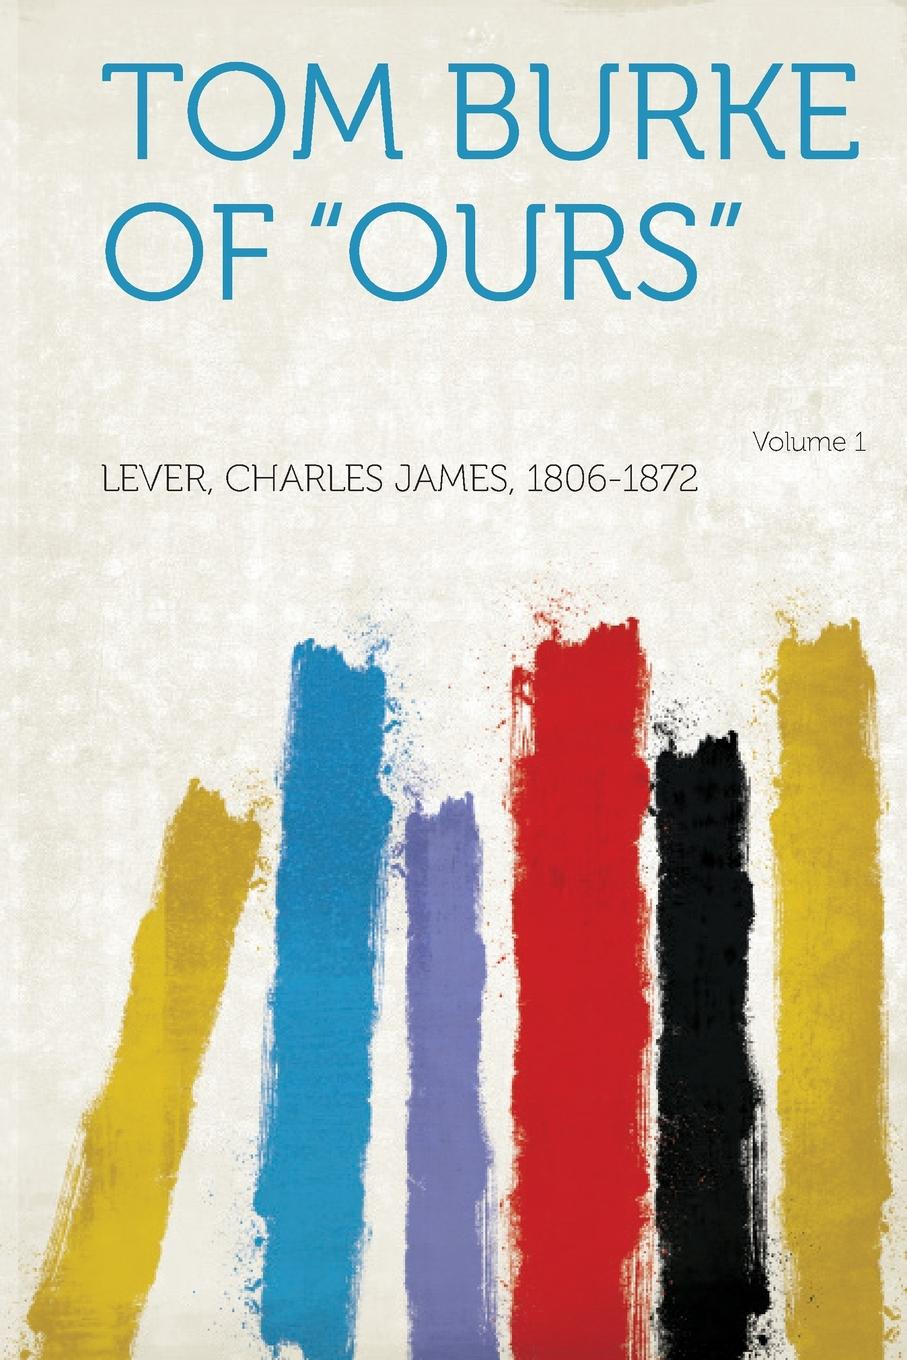 Tom Burke of Ours Volume 1 these days are ours